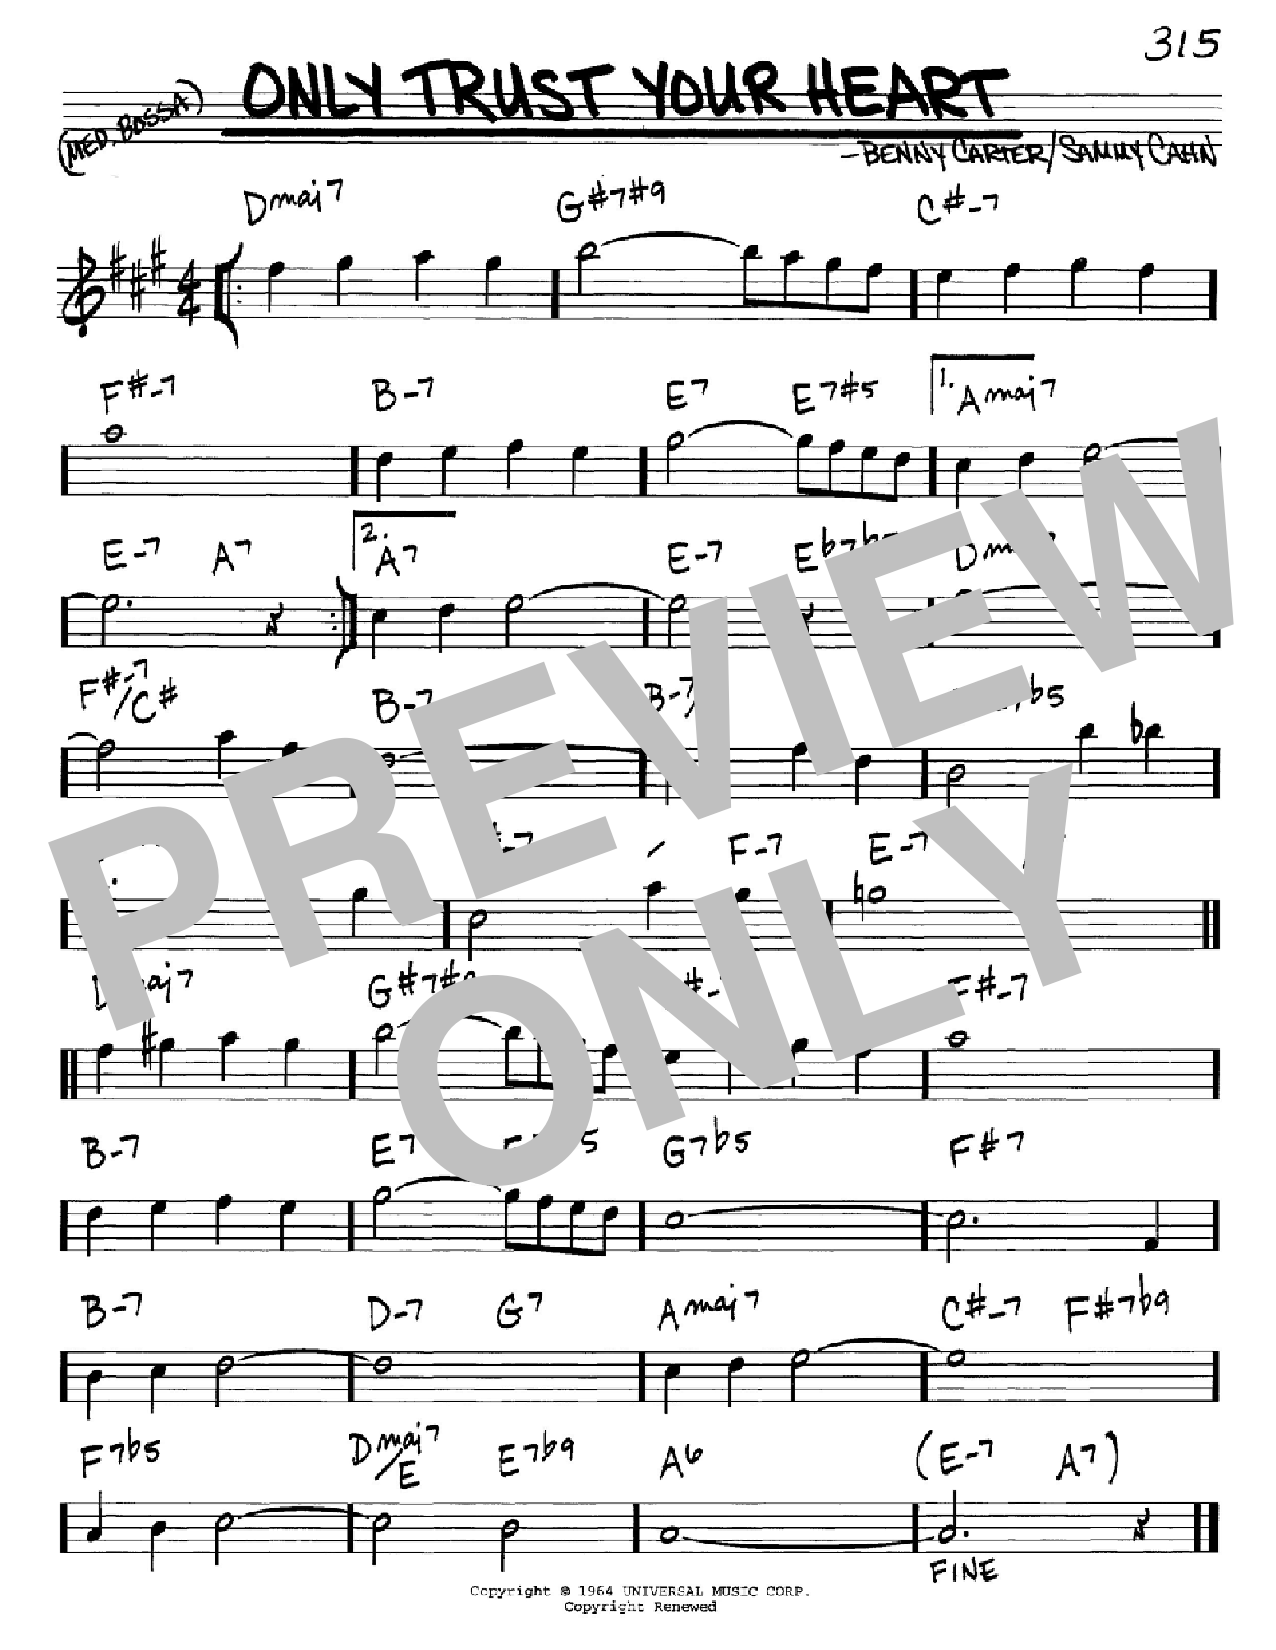 Only Trust Your Heart sheet music for voice and other instruments (Eb) by Benny Carter